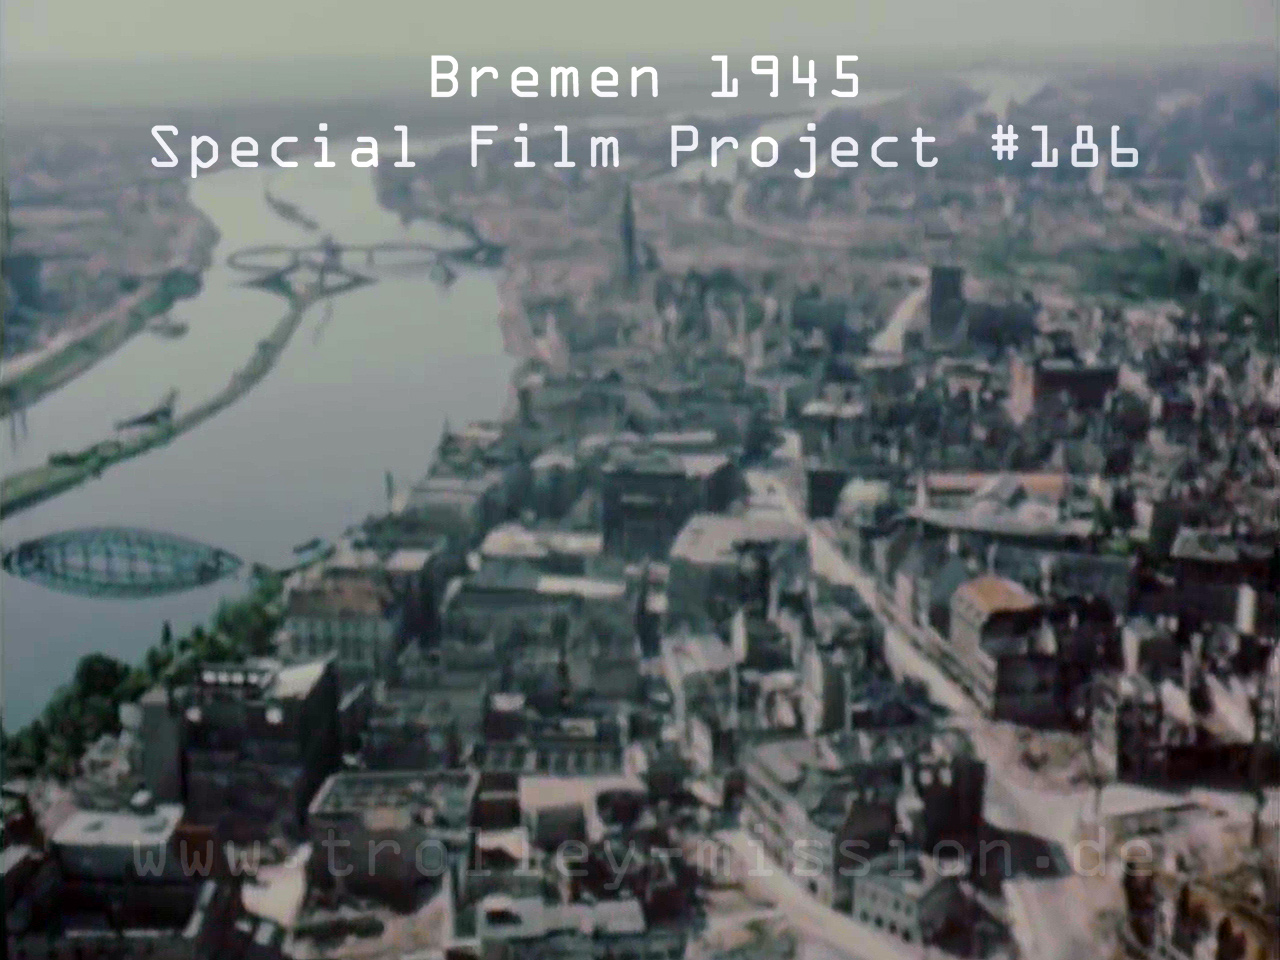 Low level flight video showing the destruction of Bremen, Germany, at the end of the European War (Second World War) 1945